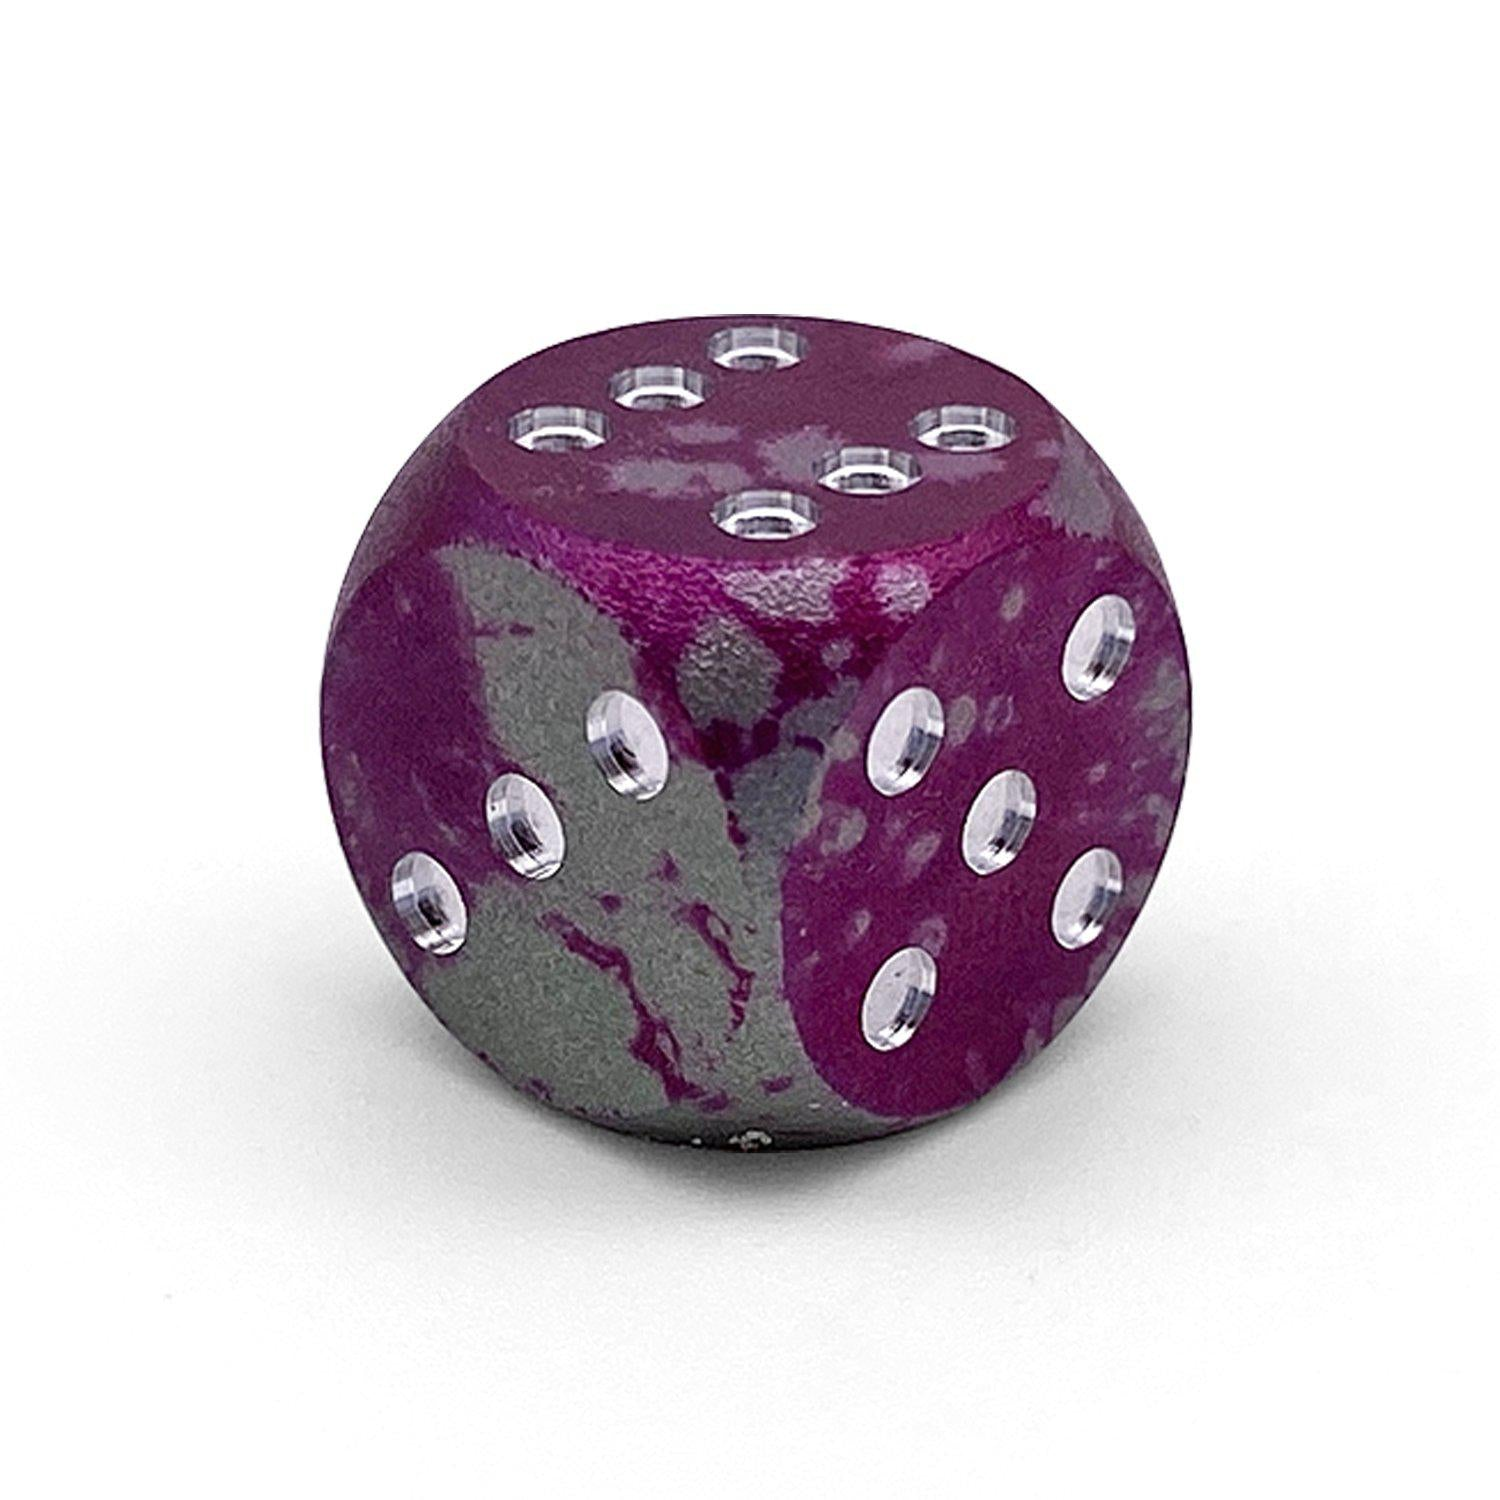 Single Wondrous D6 Mini Pips - Round Edges - Kraken